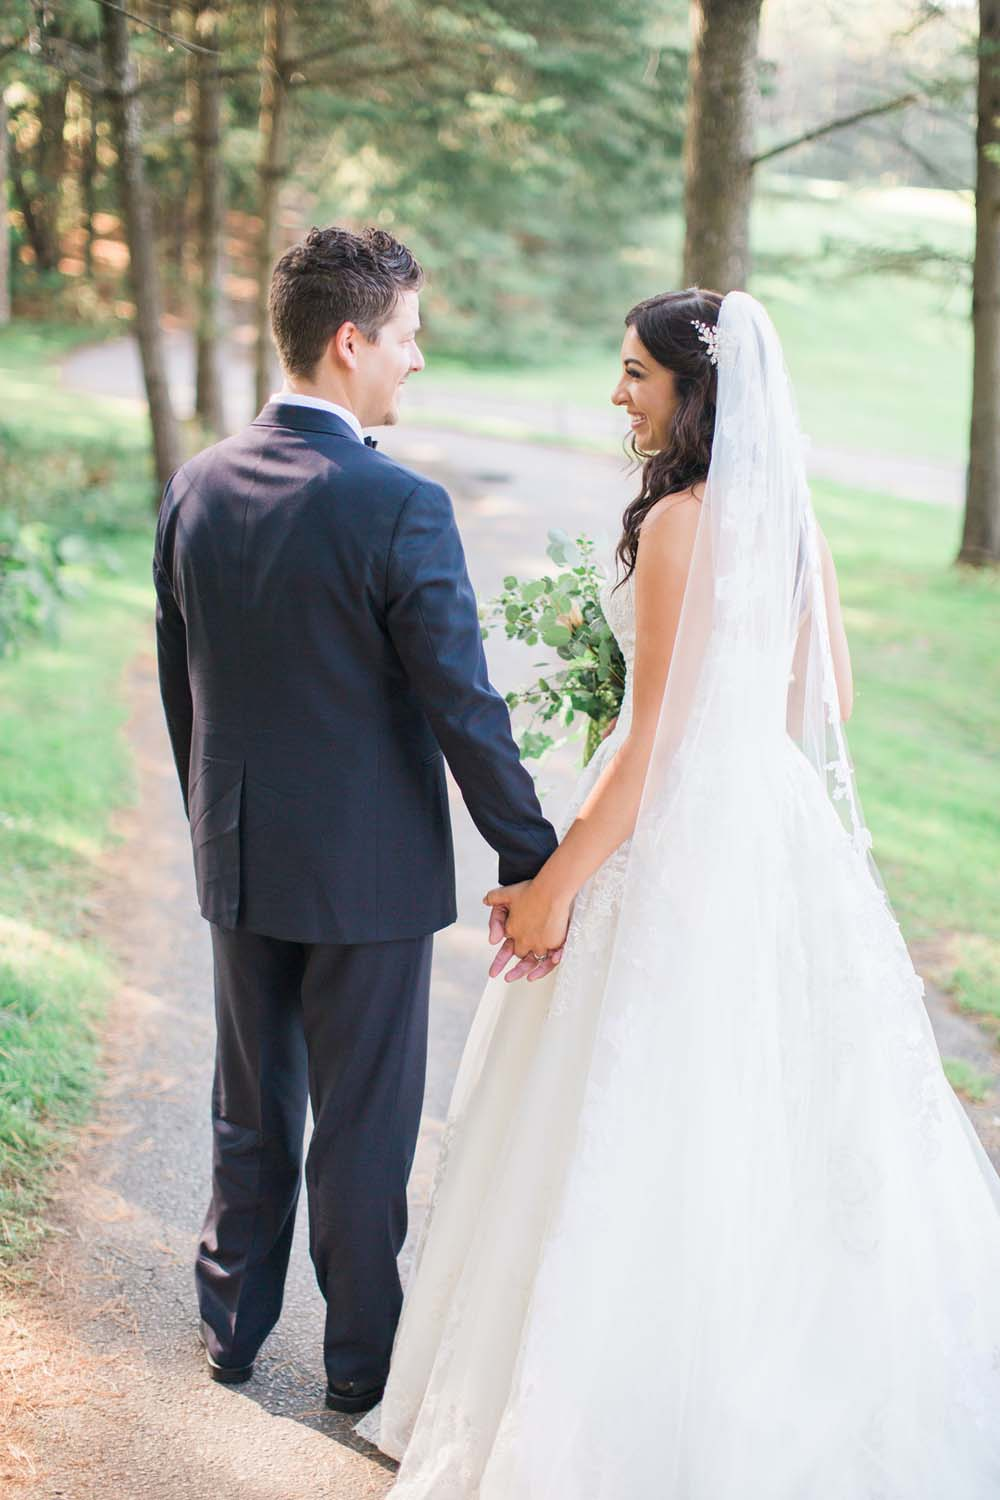 A Rustic, Whimsical Wedding in Tottenham - Holding hands